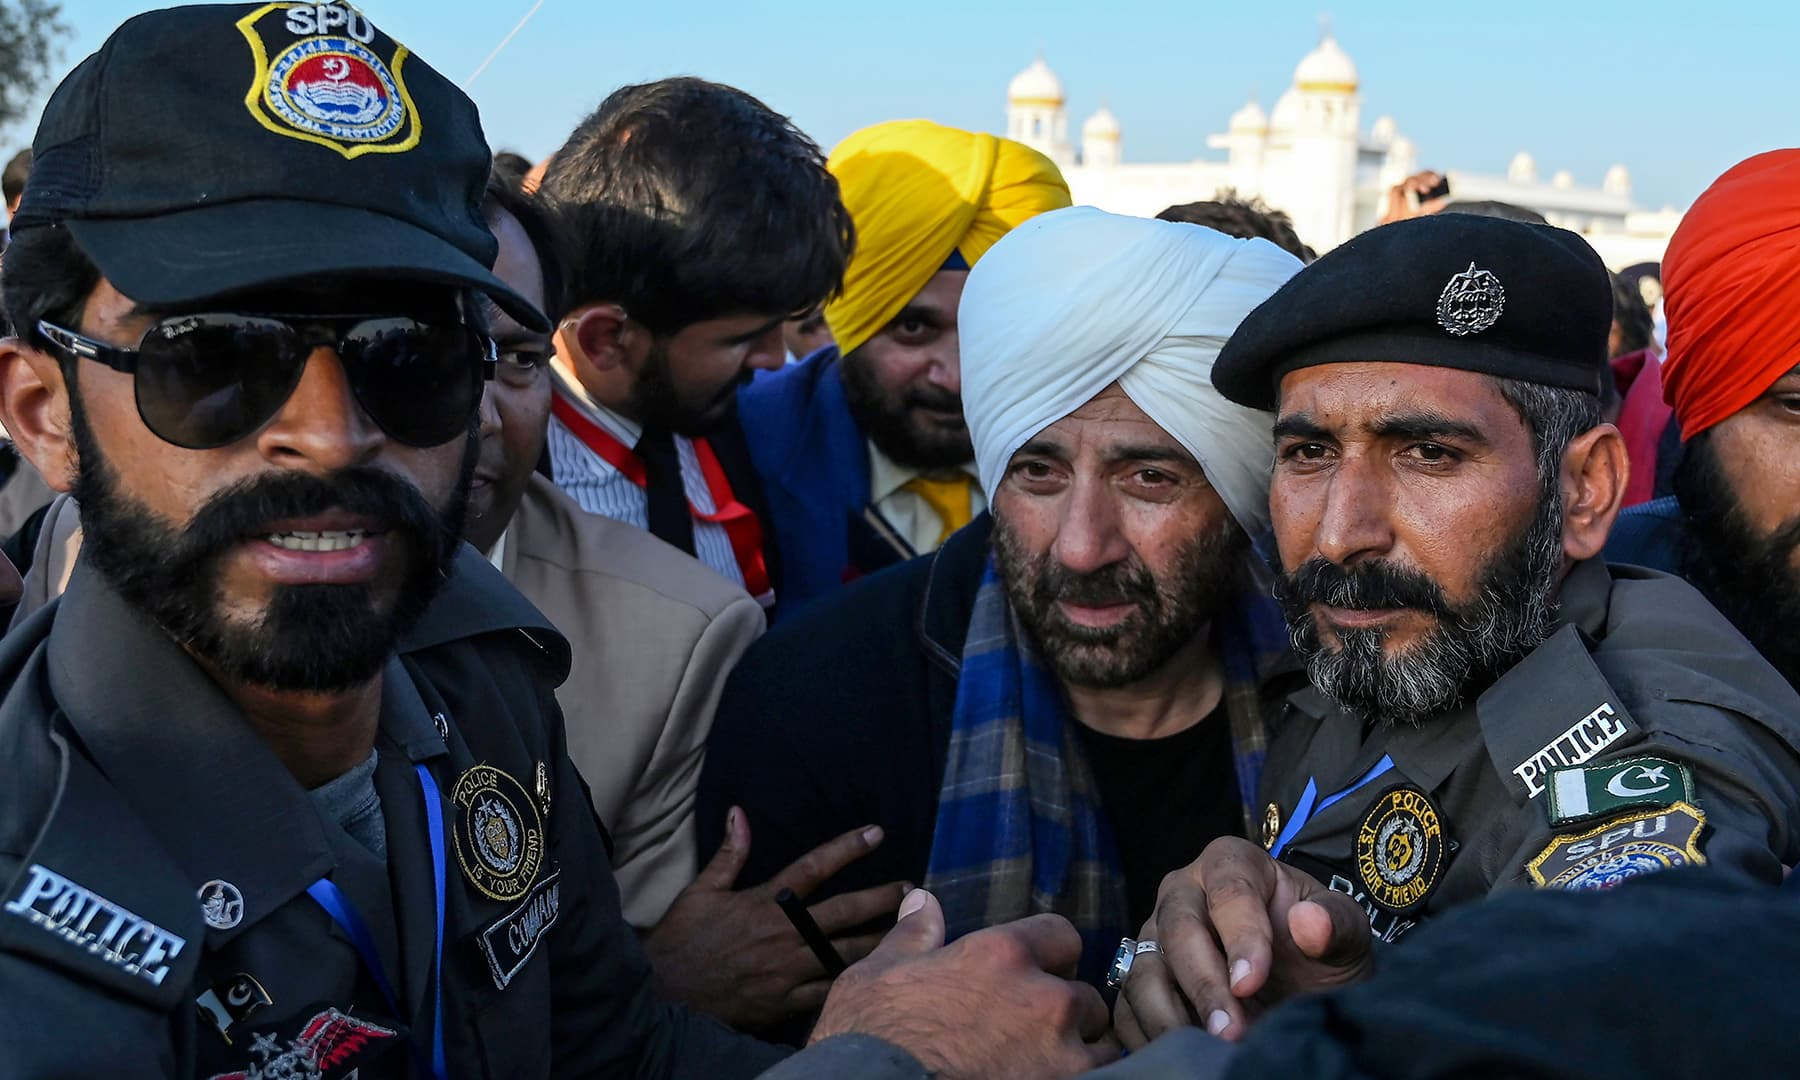 Security personnel escort Indian politician and former cricketer Navjot Singh Sidhu (L) and Indian Bollywood actor Sunny Deol as they visit the Shrine of Baba Guru Nanak Dev at Gurdwara Darbar Sahib in Kartarpur on Saturday. — AFP